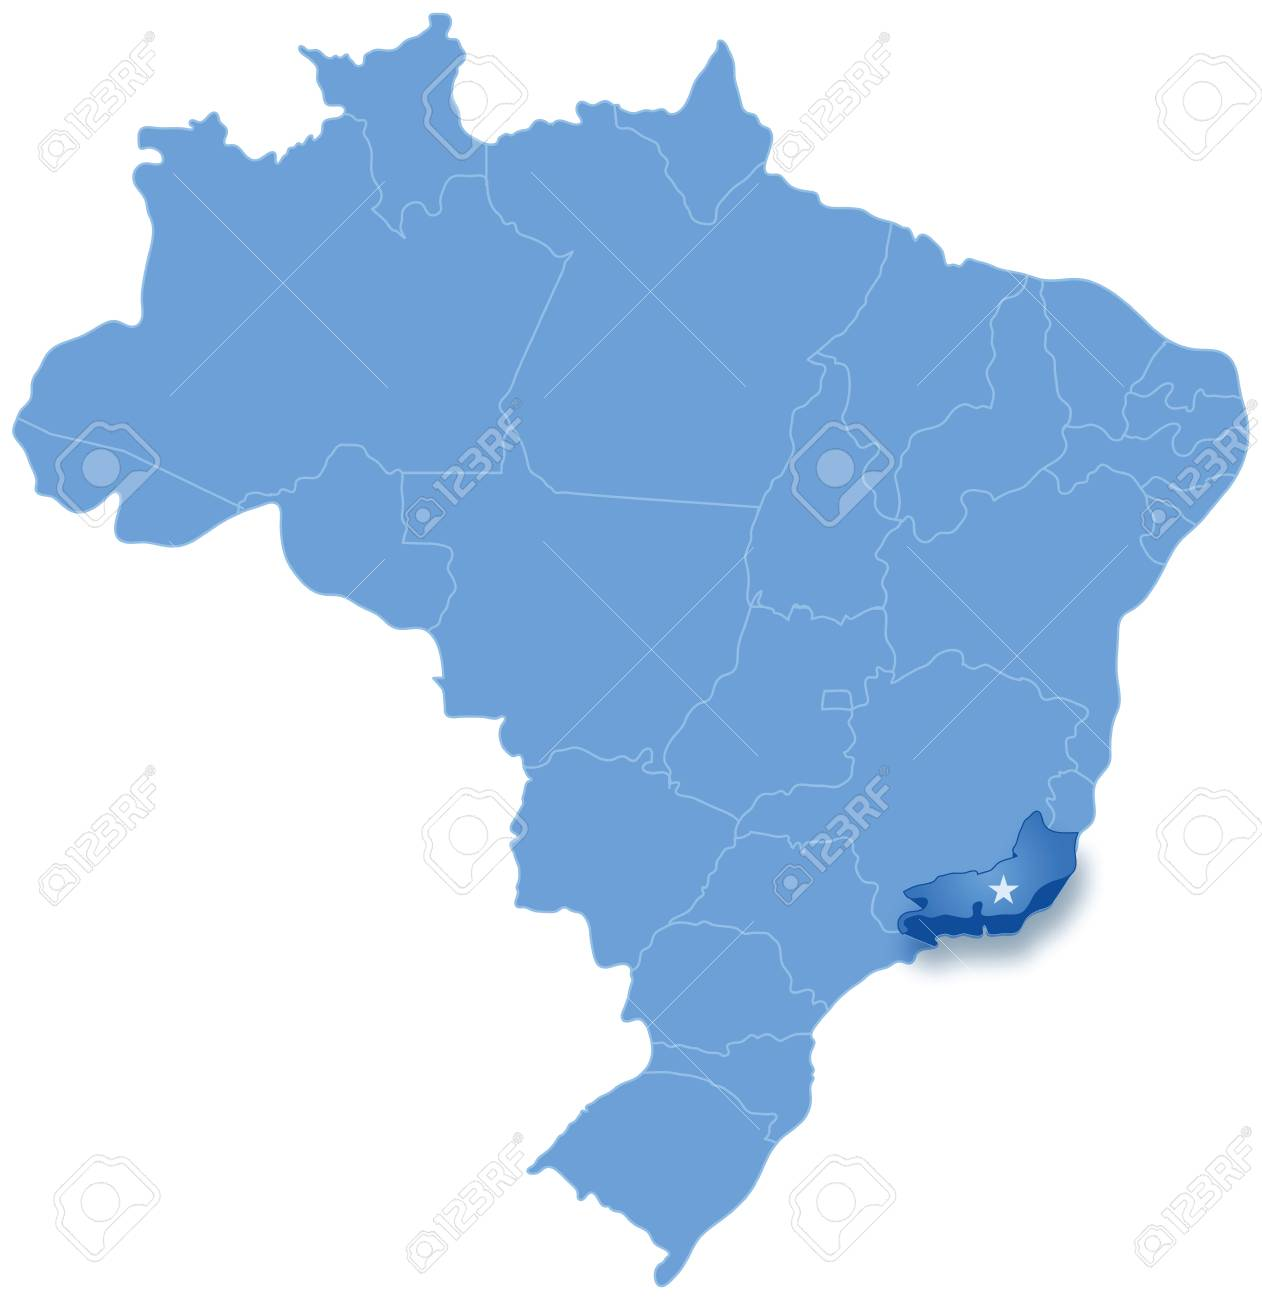 Political map of Brazil with all states where Rio de Janeiro..